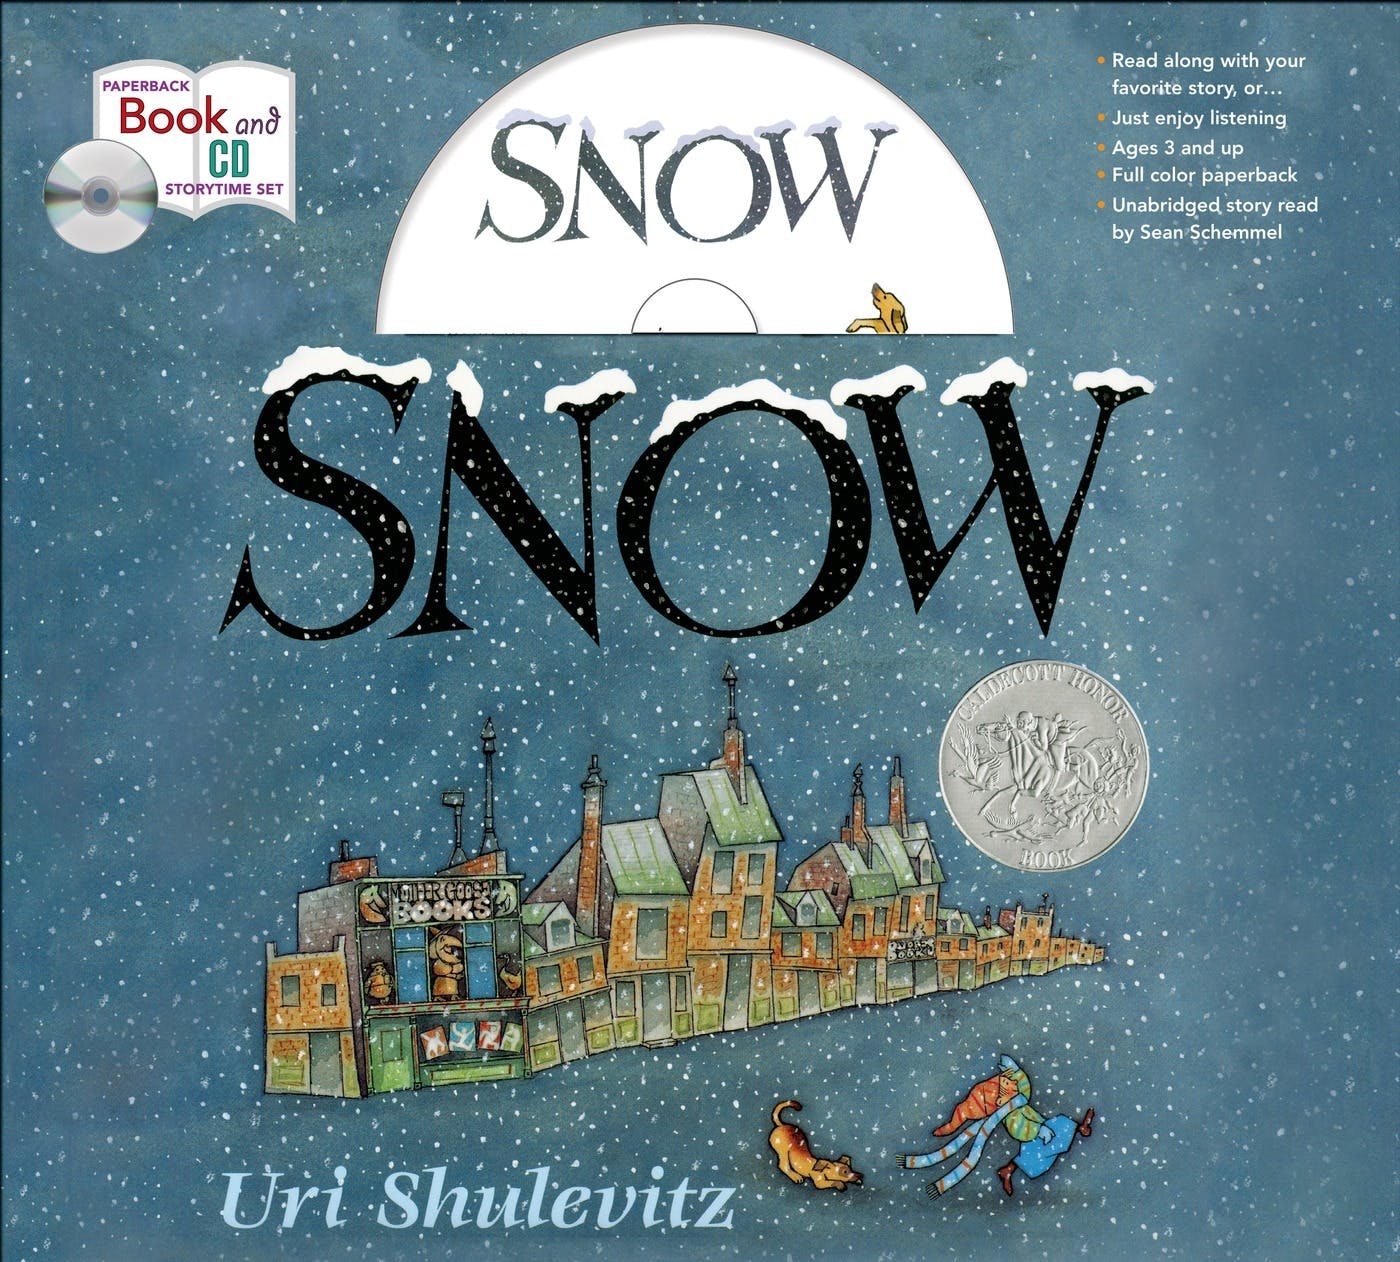 Image of Snow Storytime Set